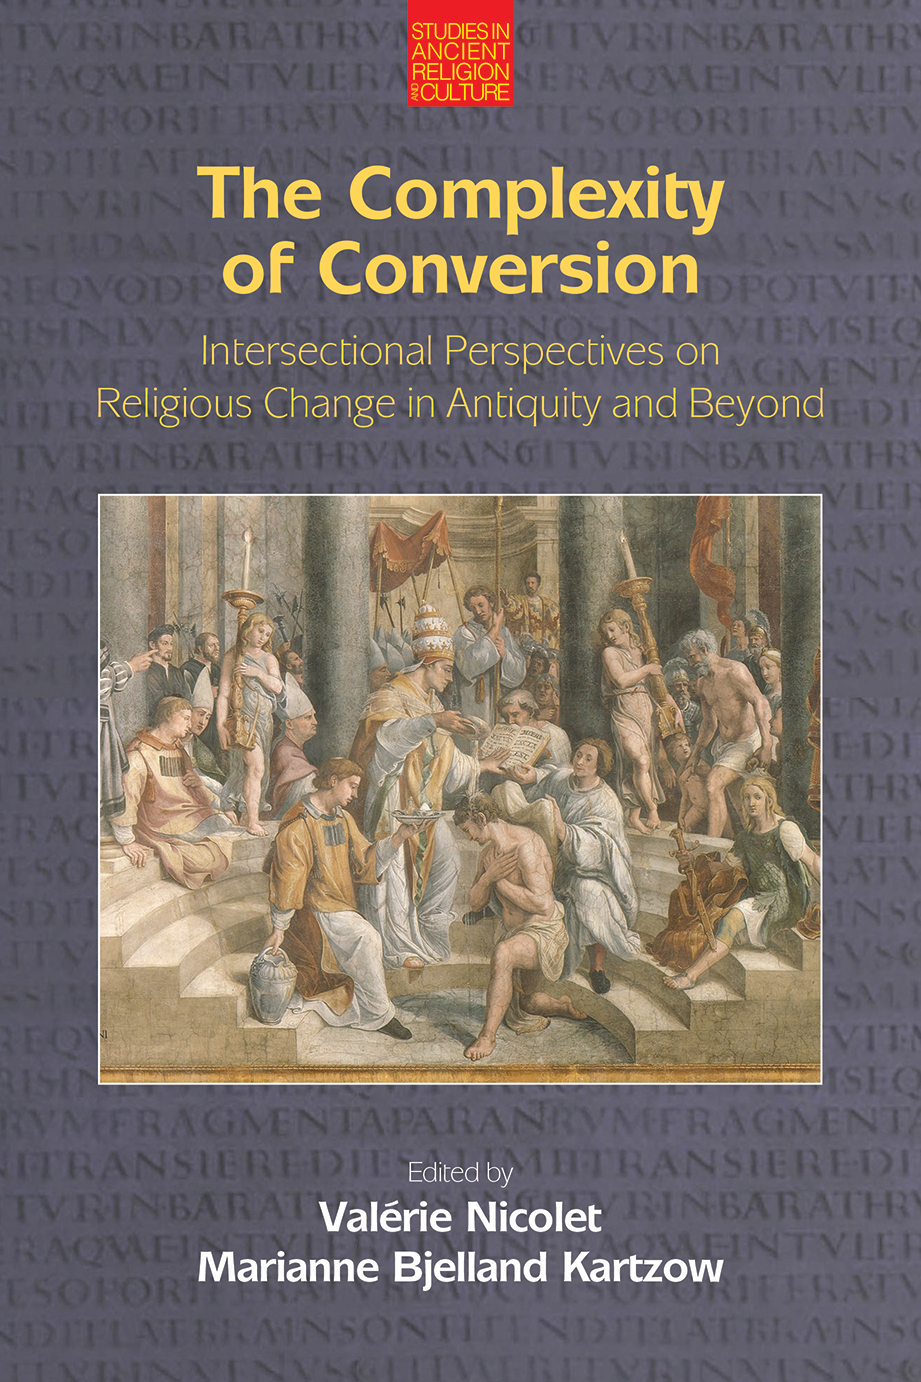 The Complexity of Conversion - Intersectional Perspectives on Religious Change in Antiquity and Beyond - Valérie Nicolet